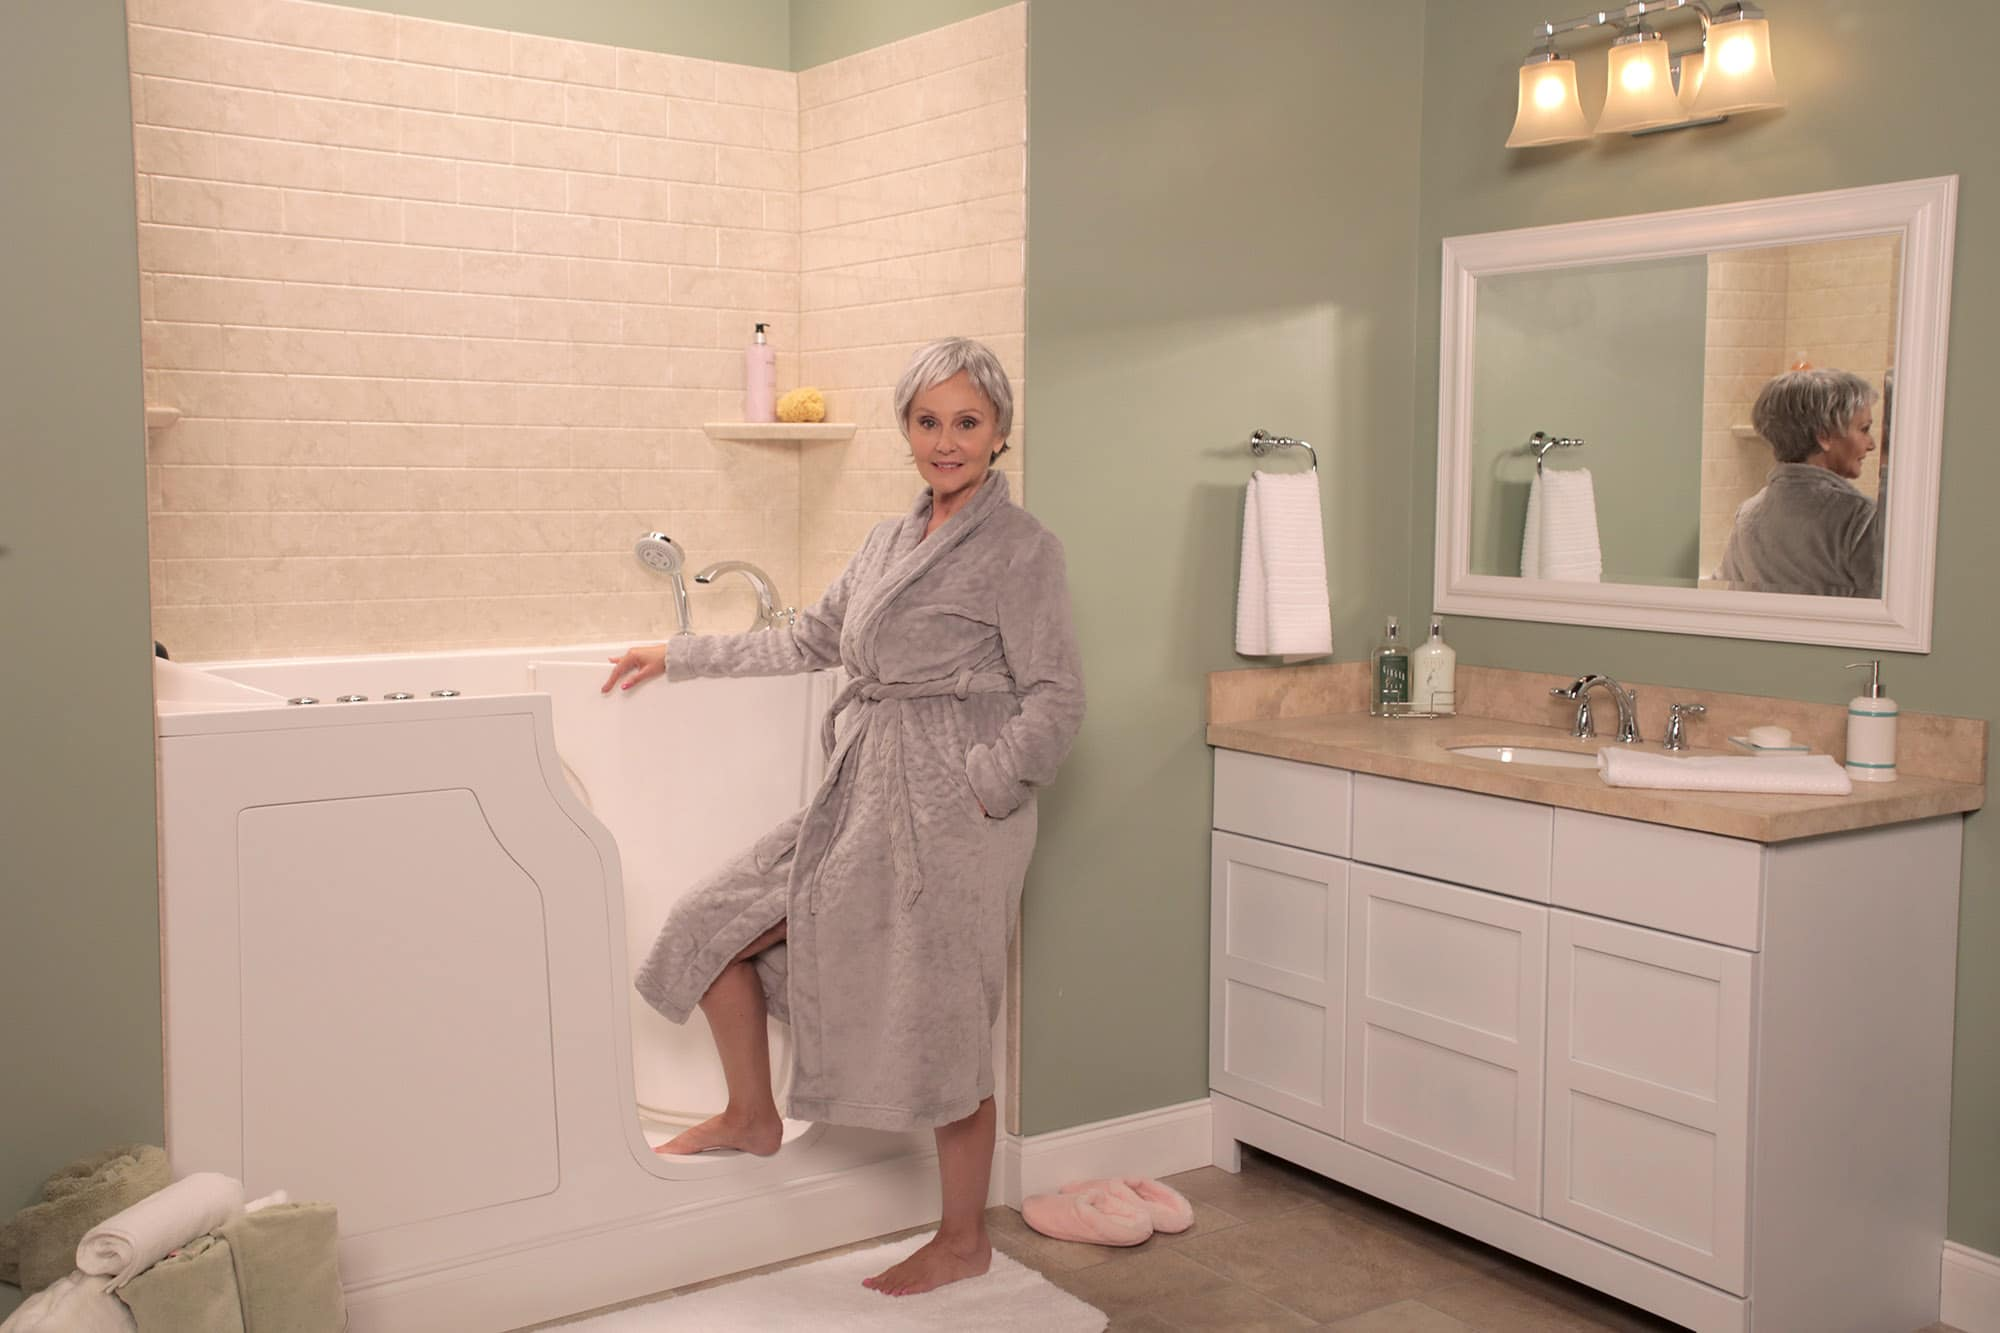 South Florida Walk-In Bathtubs - Bathrooms Plus Inc (11)